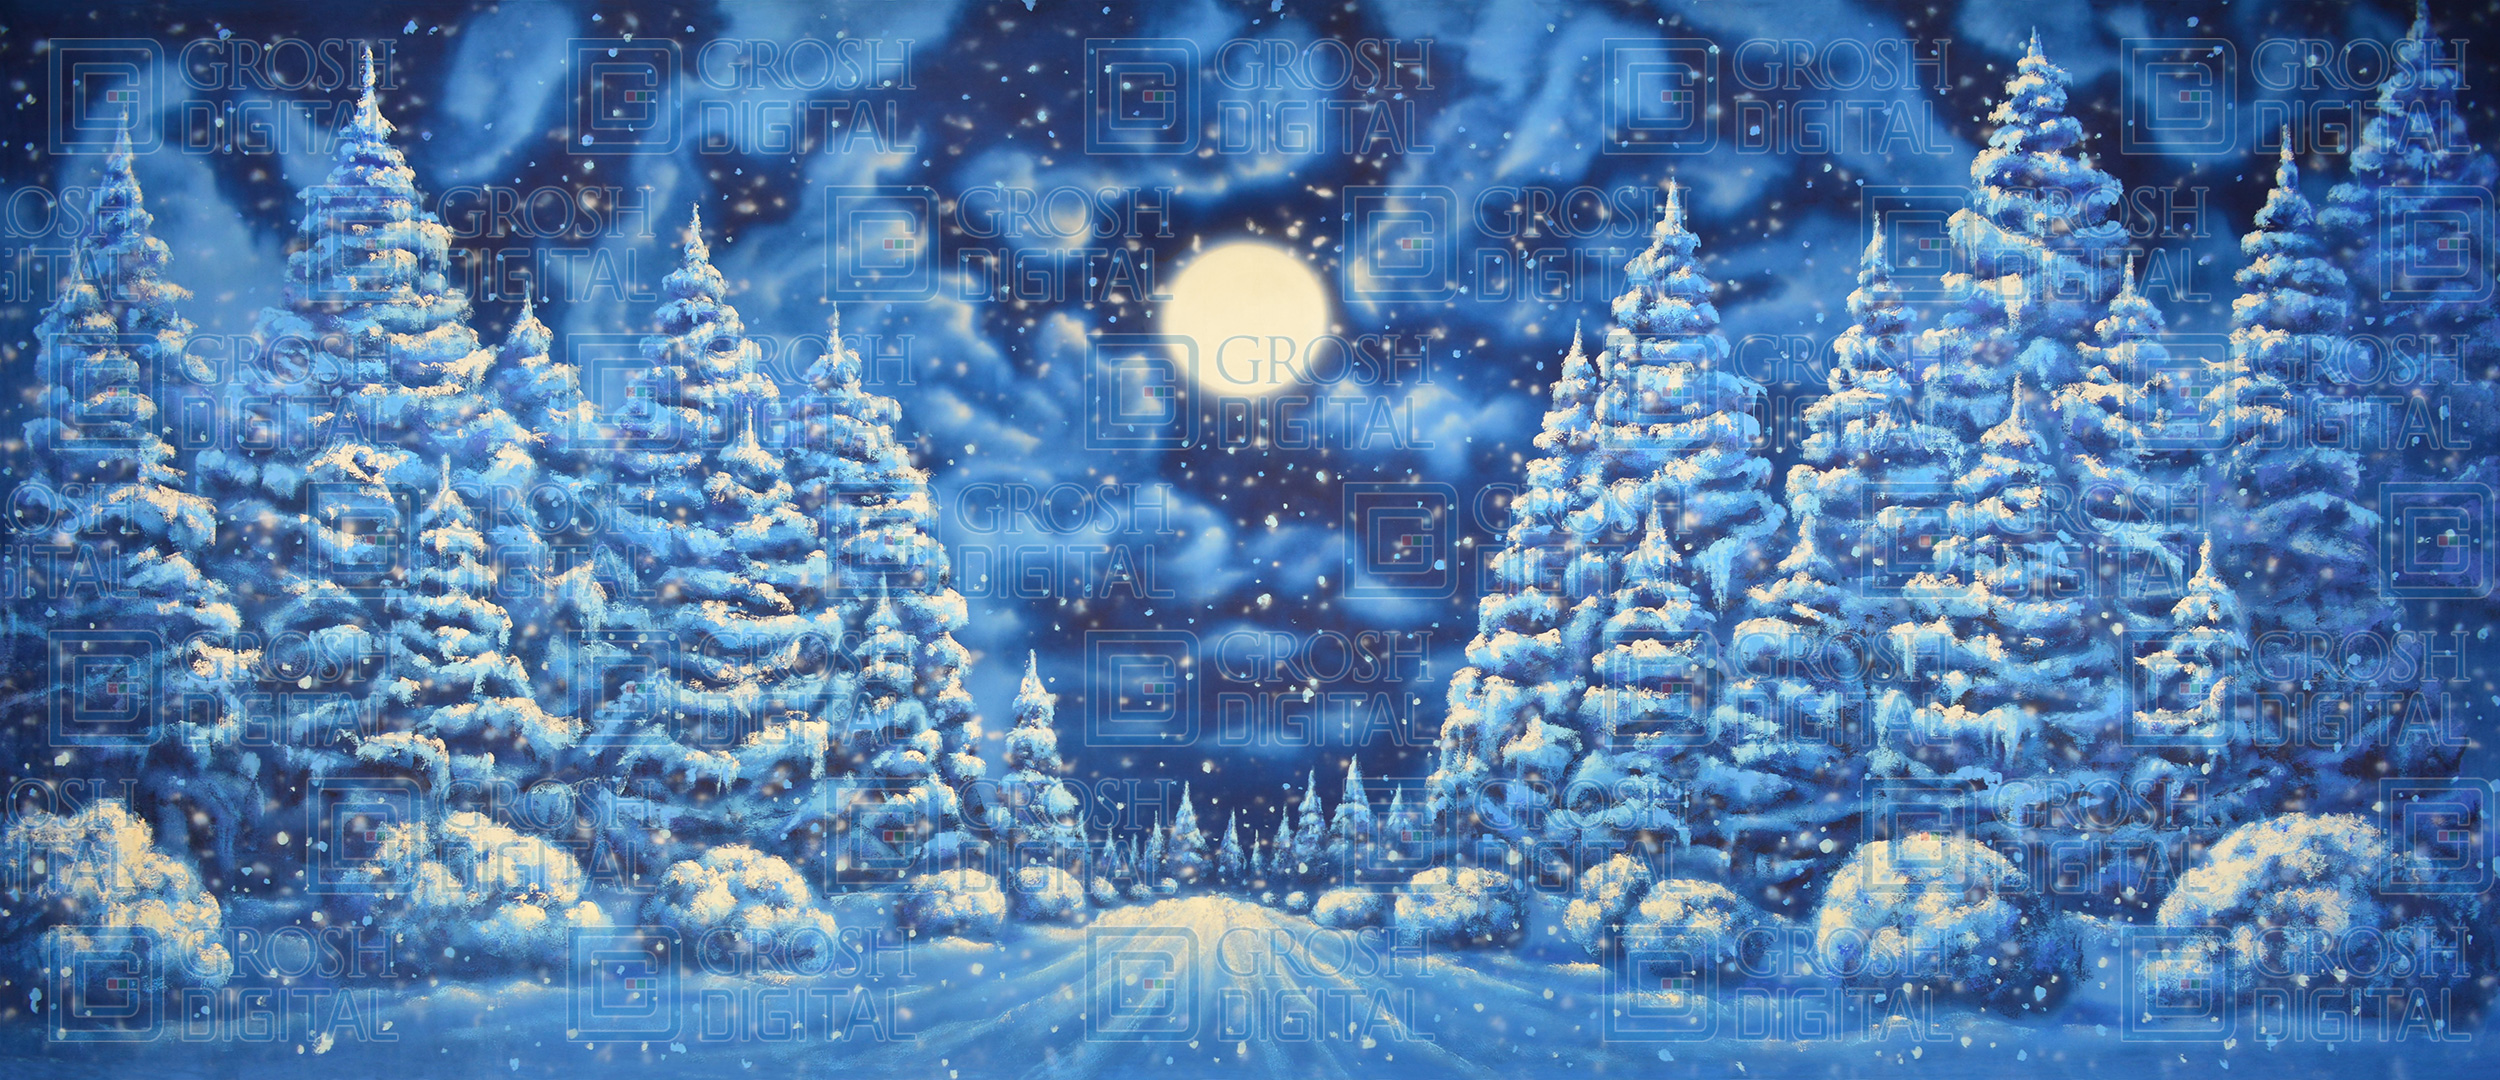 Night Snow Landscape Projected Backdrop for A Christmas Carol, Forest, Nutcracker, Snows